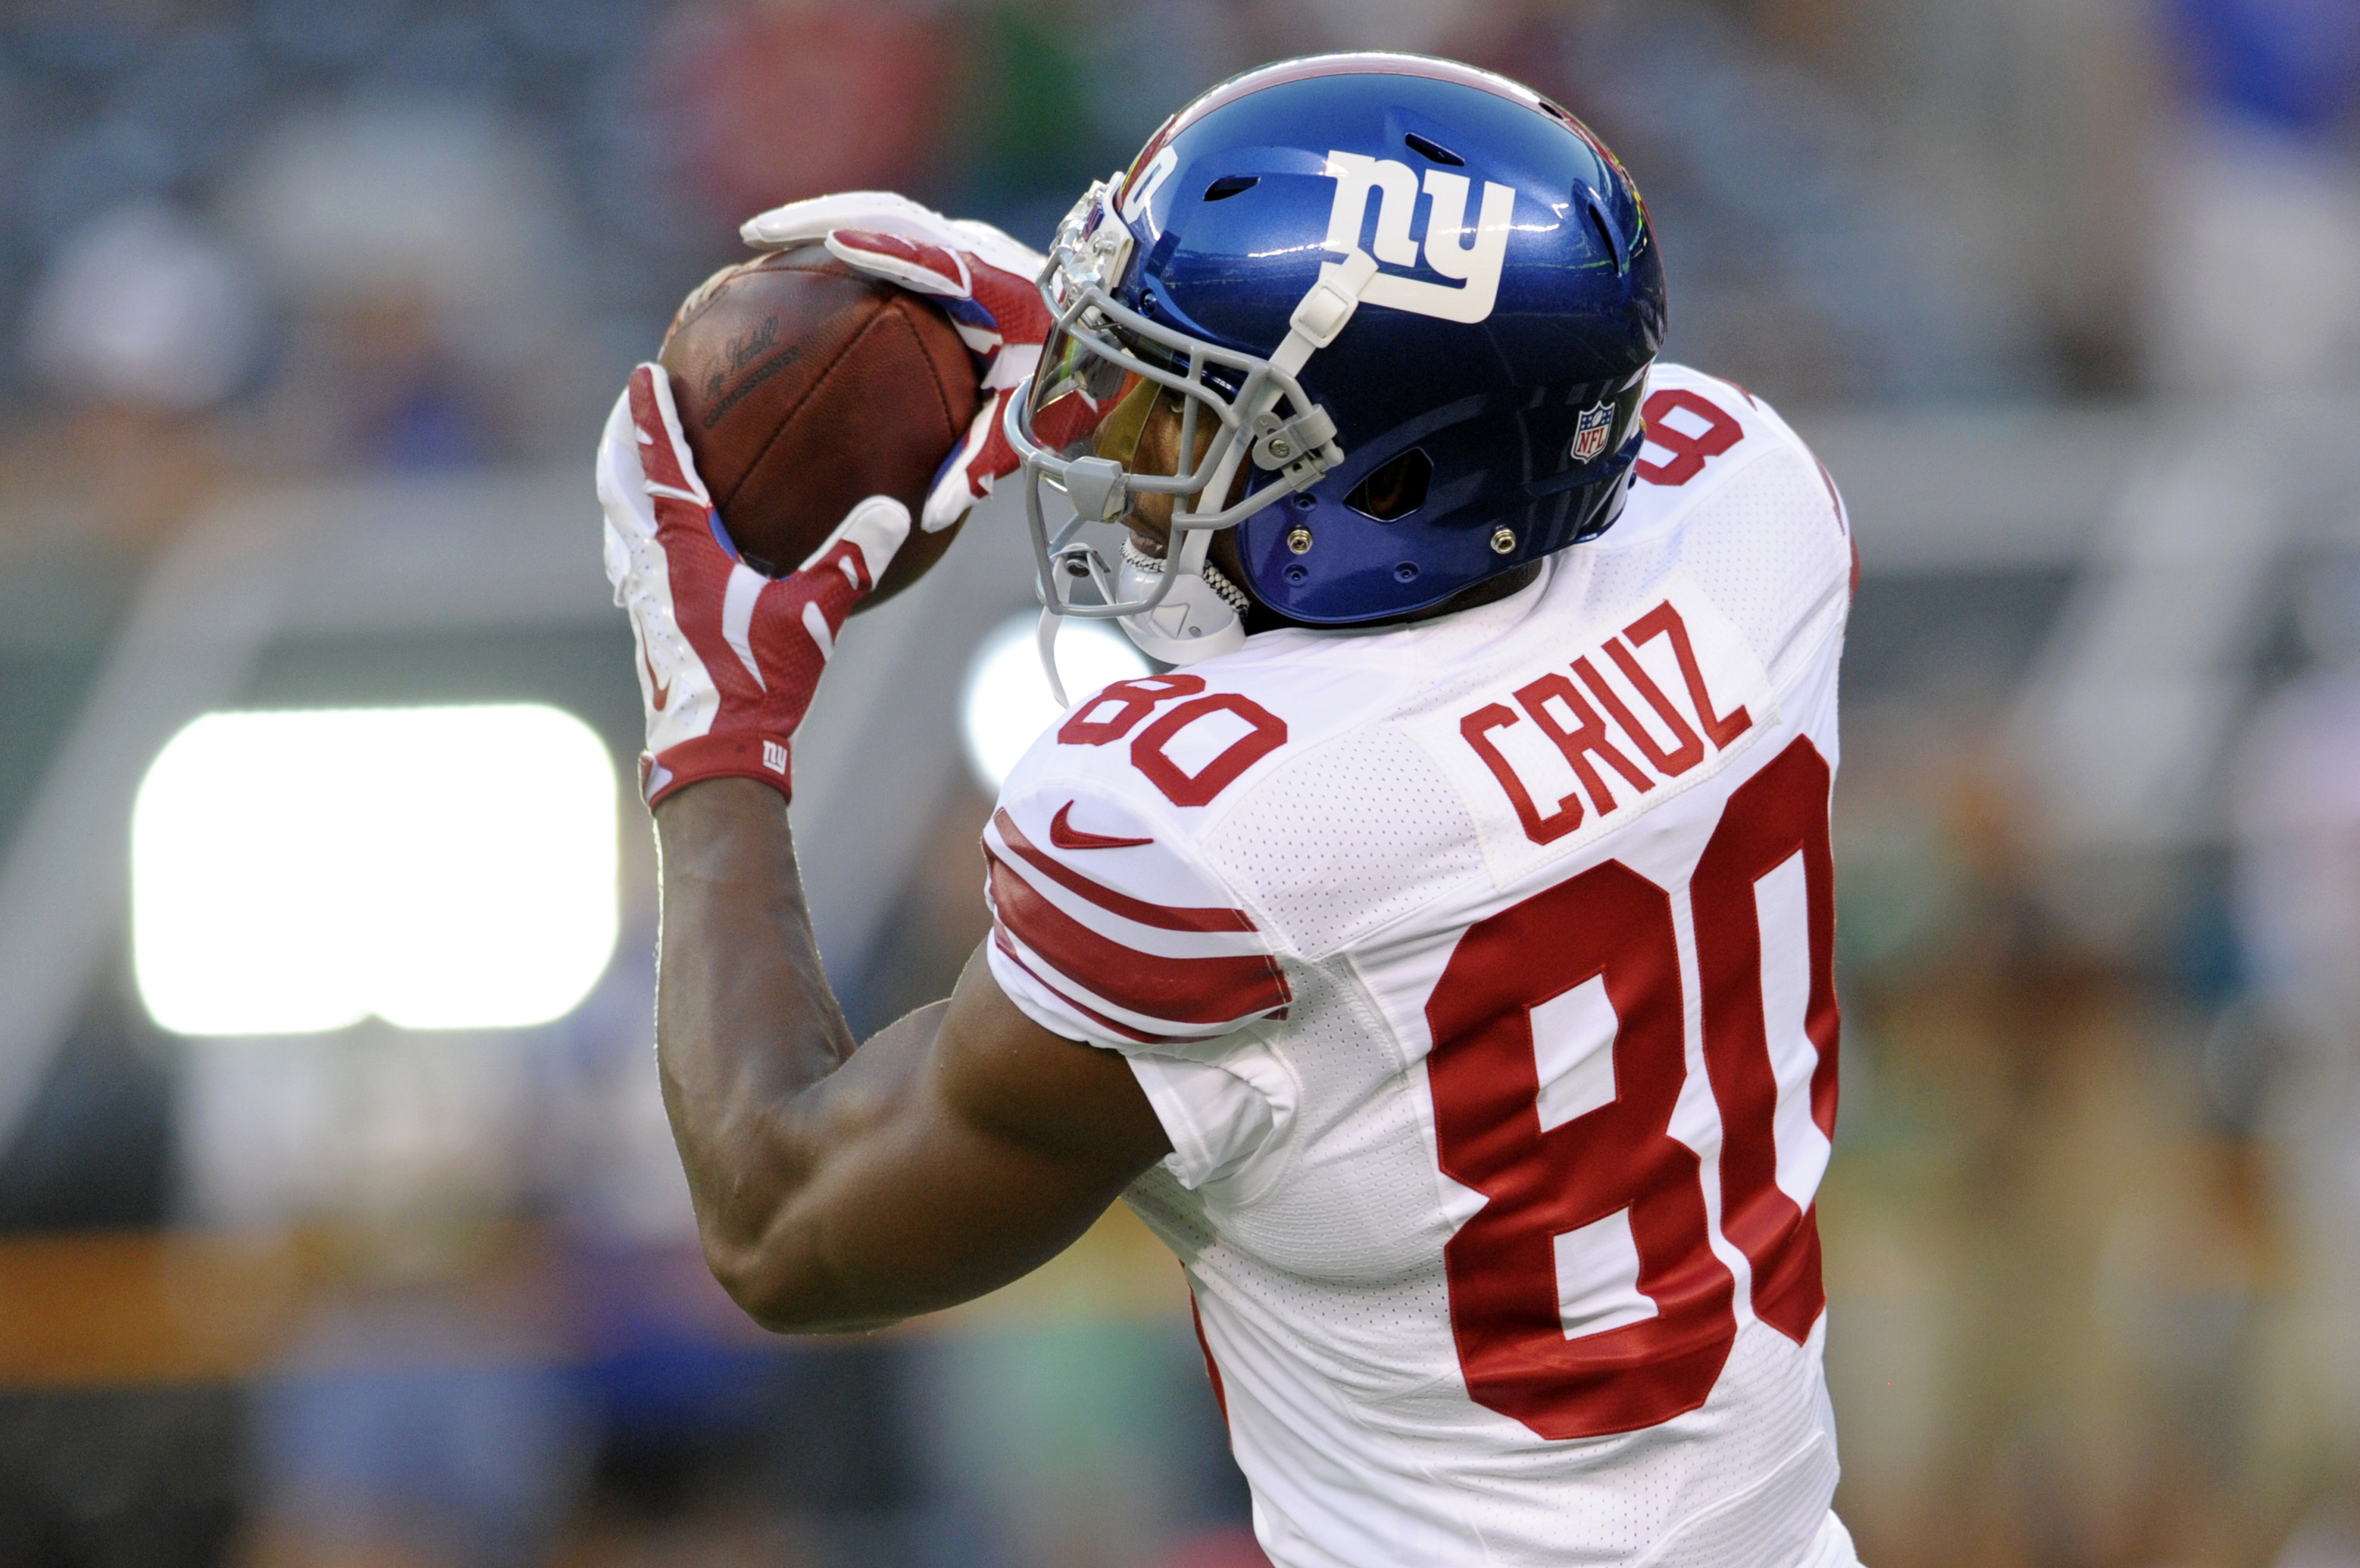 FILE - In this Aug. 27, 2016, file photo, New York Giants wide receiver Victor Cruz (80) catches a pass before an NFL preseason football game against the New York Jets in East Rutherford, N.J. Cruz is expected to play in his first game on Sunday against t